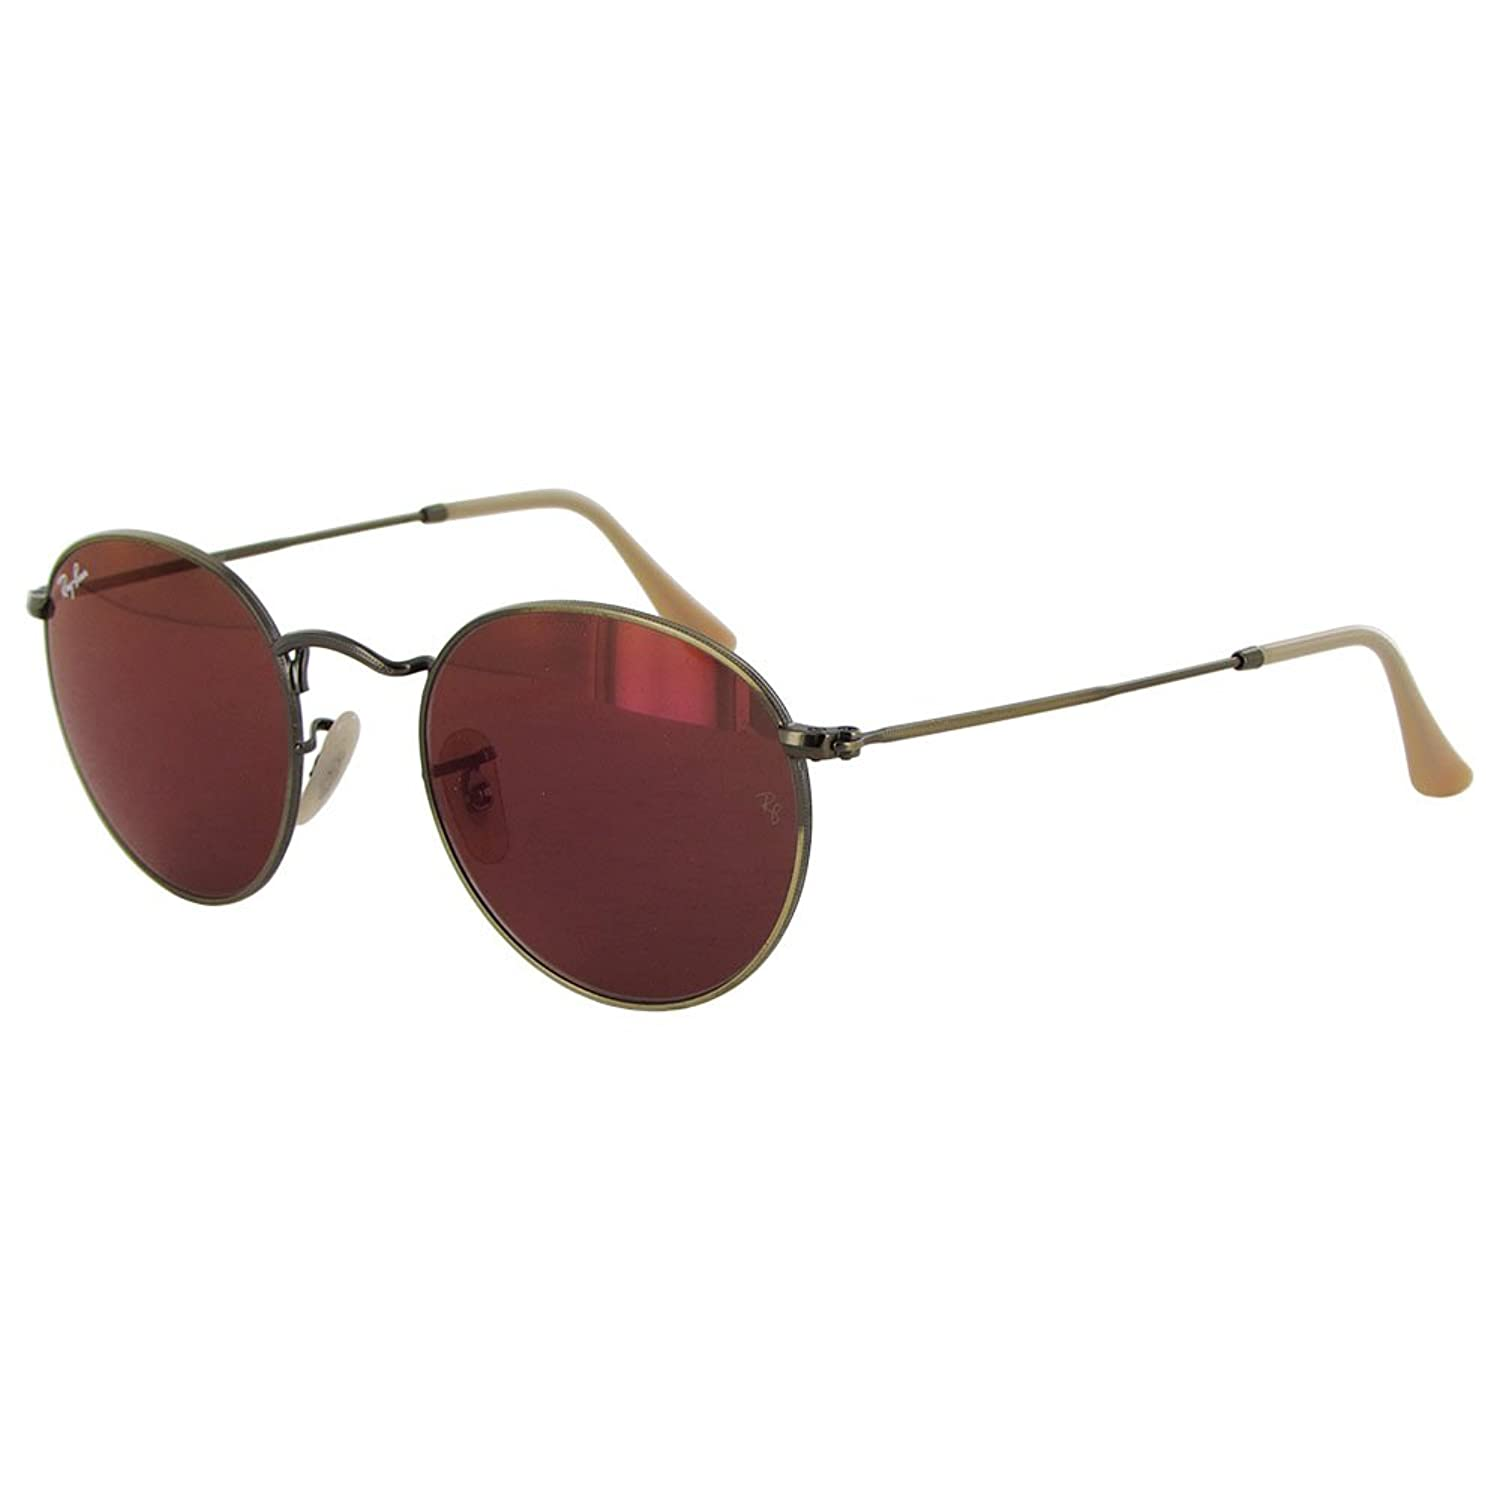 ray ban classic metal round sunglasses  ray ban men's orb3447 polarized round sunglasses